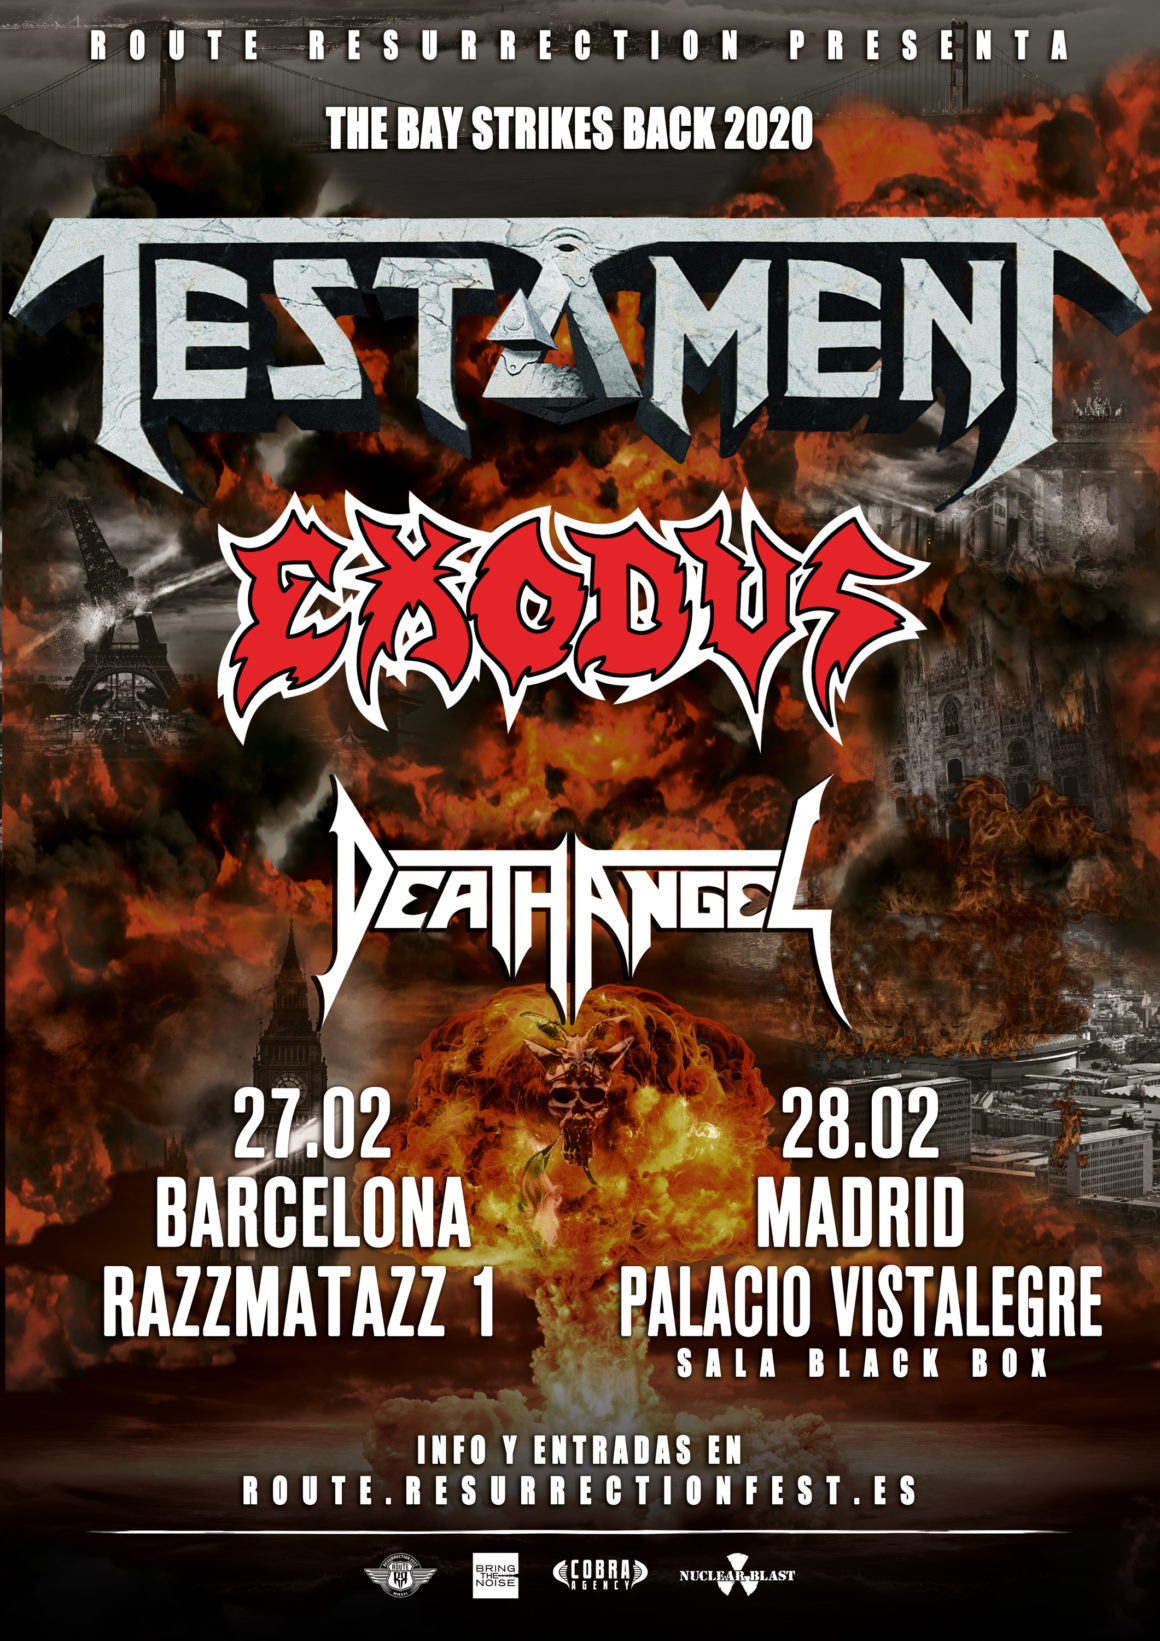 Nueva gira Route Resurrection: Testament con Exodus y Death Angel